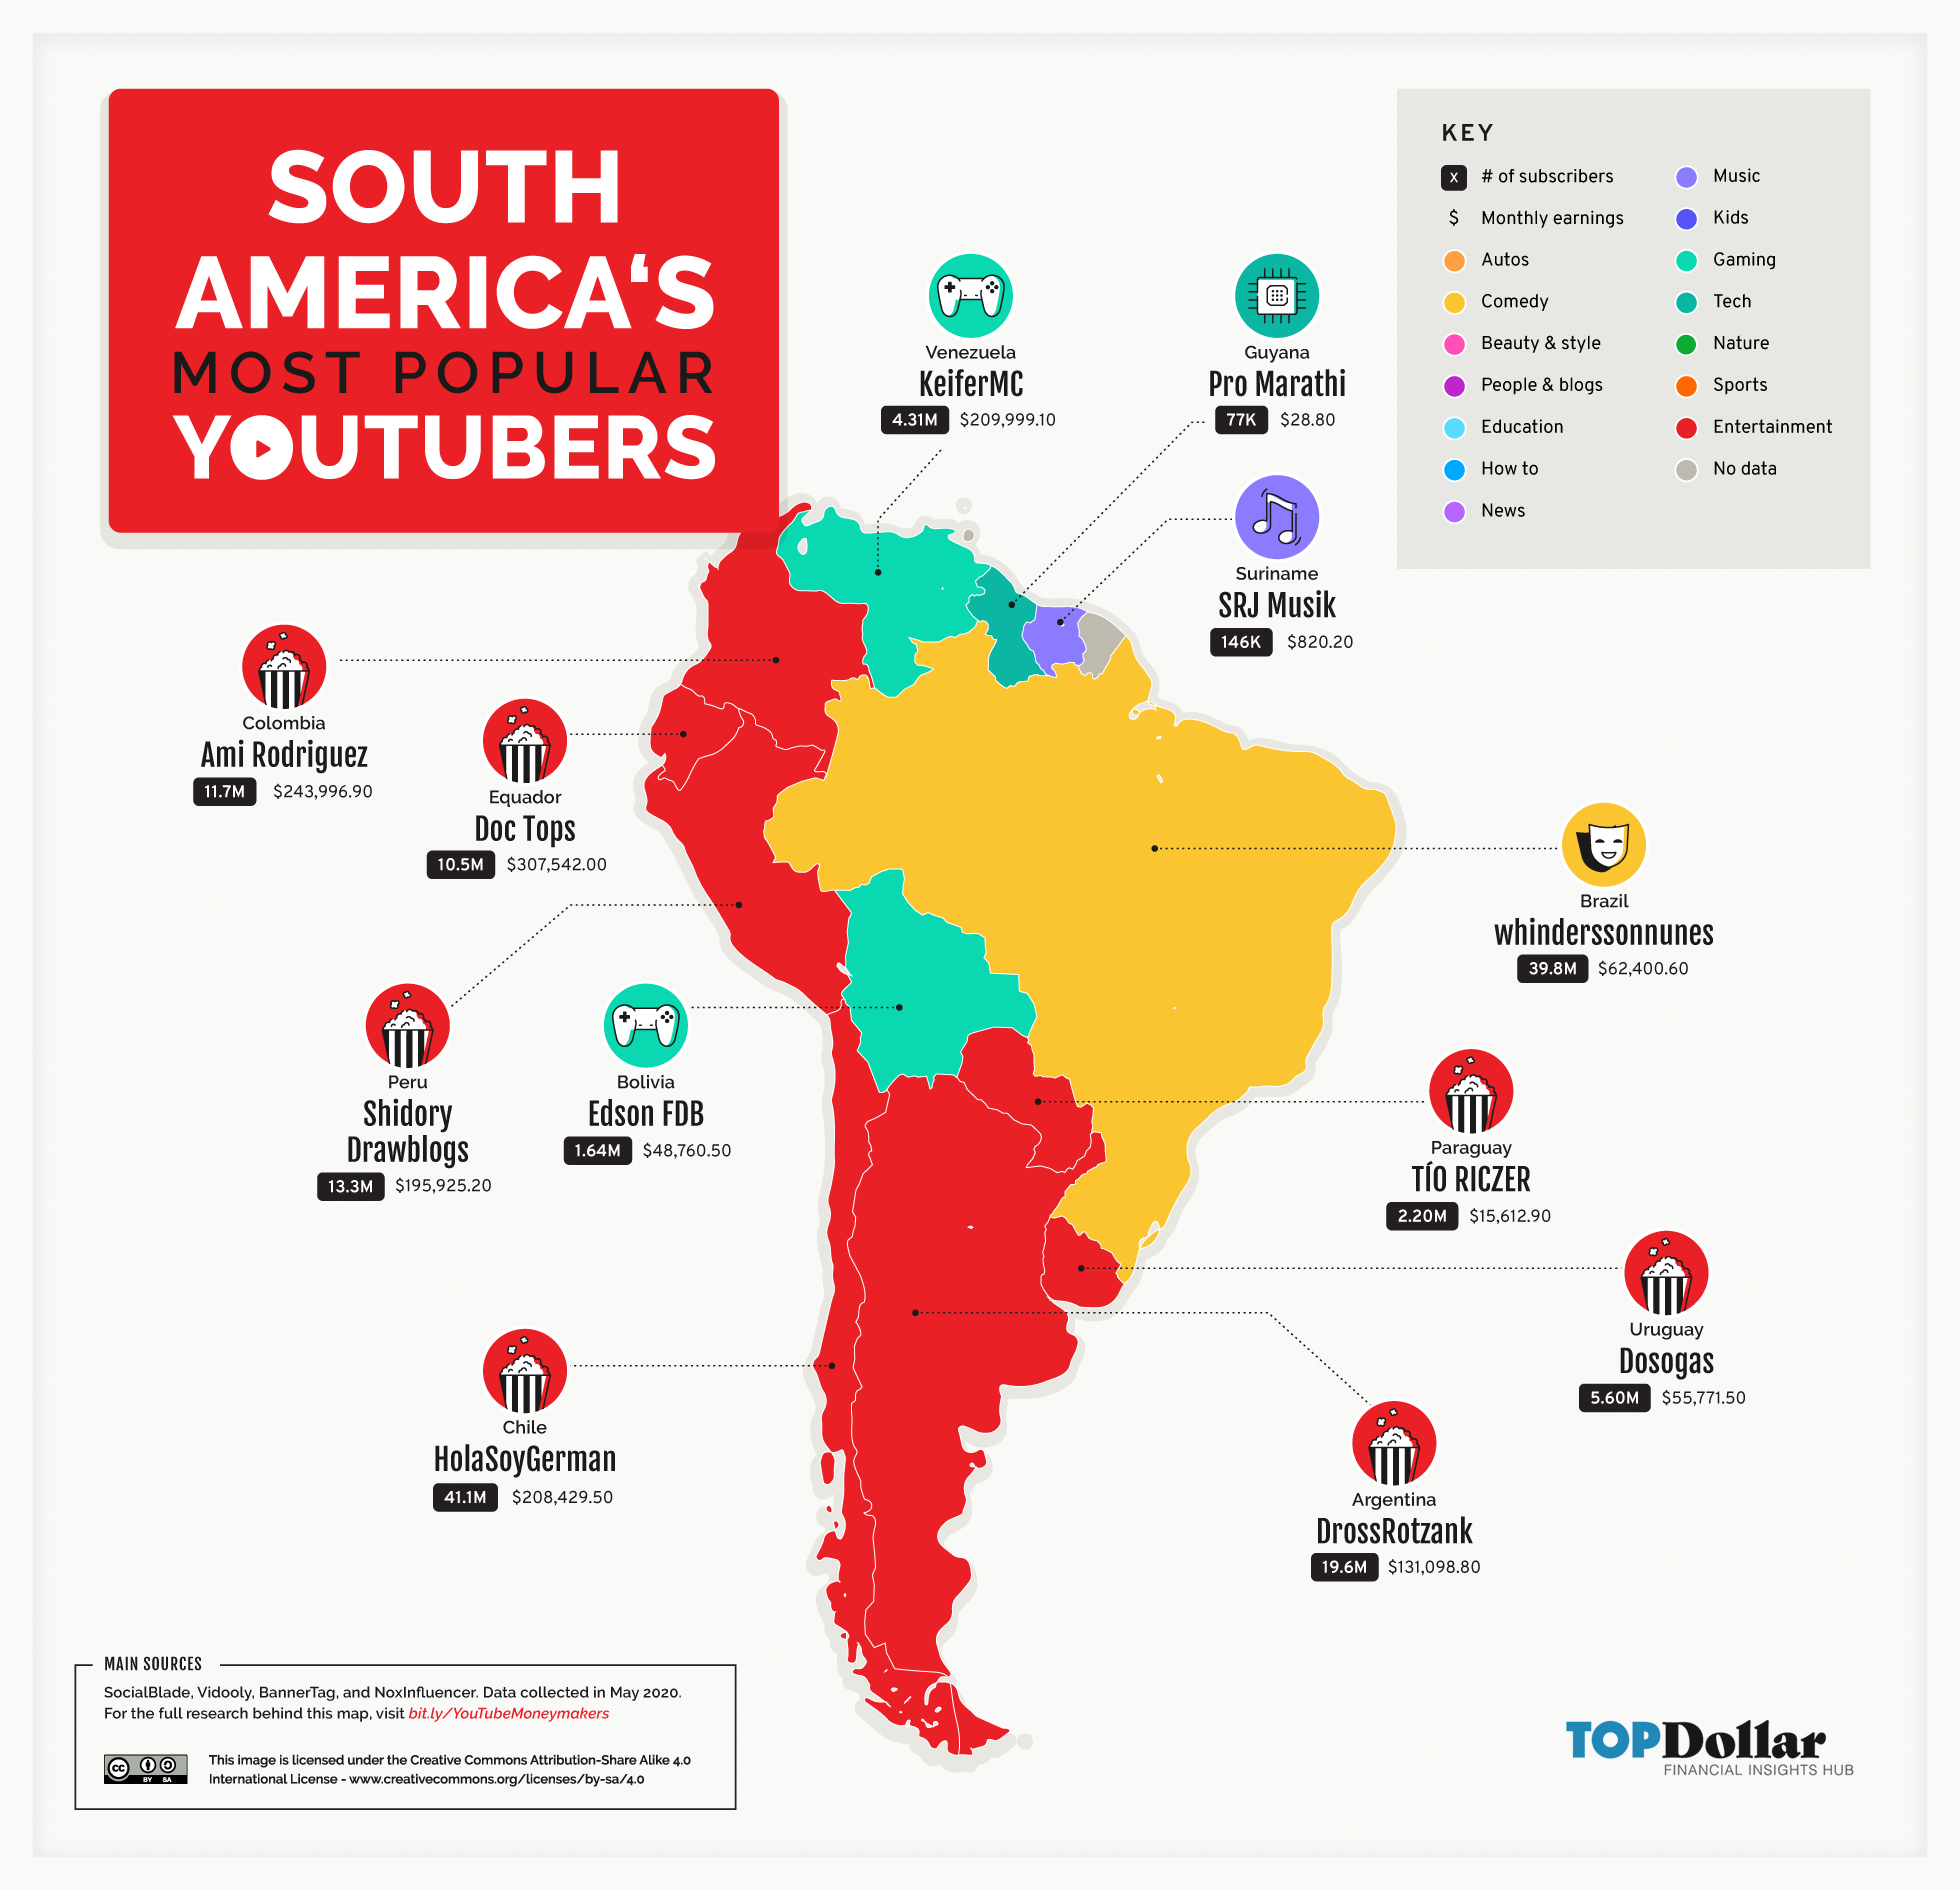 South America's Most Popular YouTubers